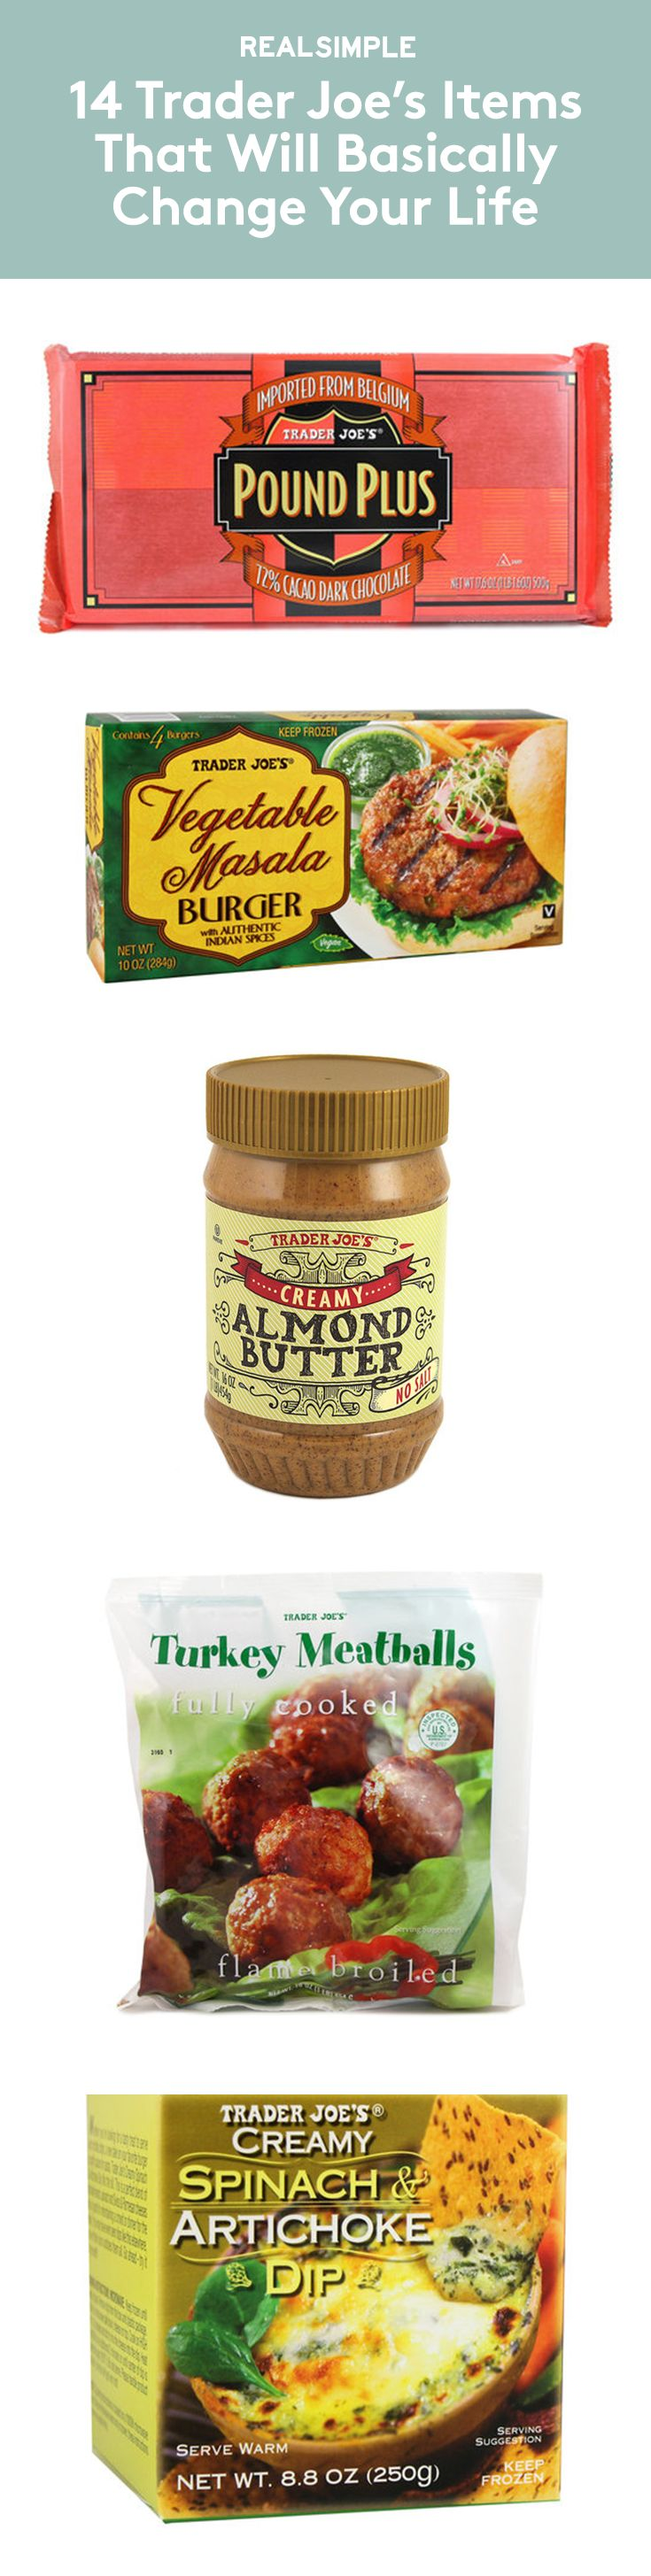 14 Trader Joe's Items That Will Basically Change Your Life, according to Real…